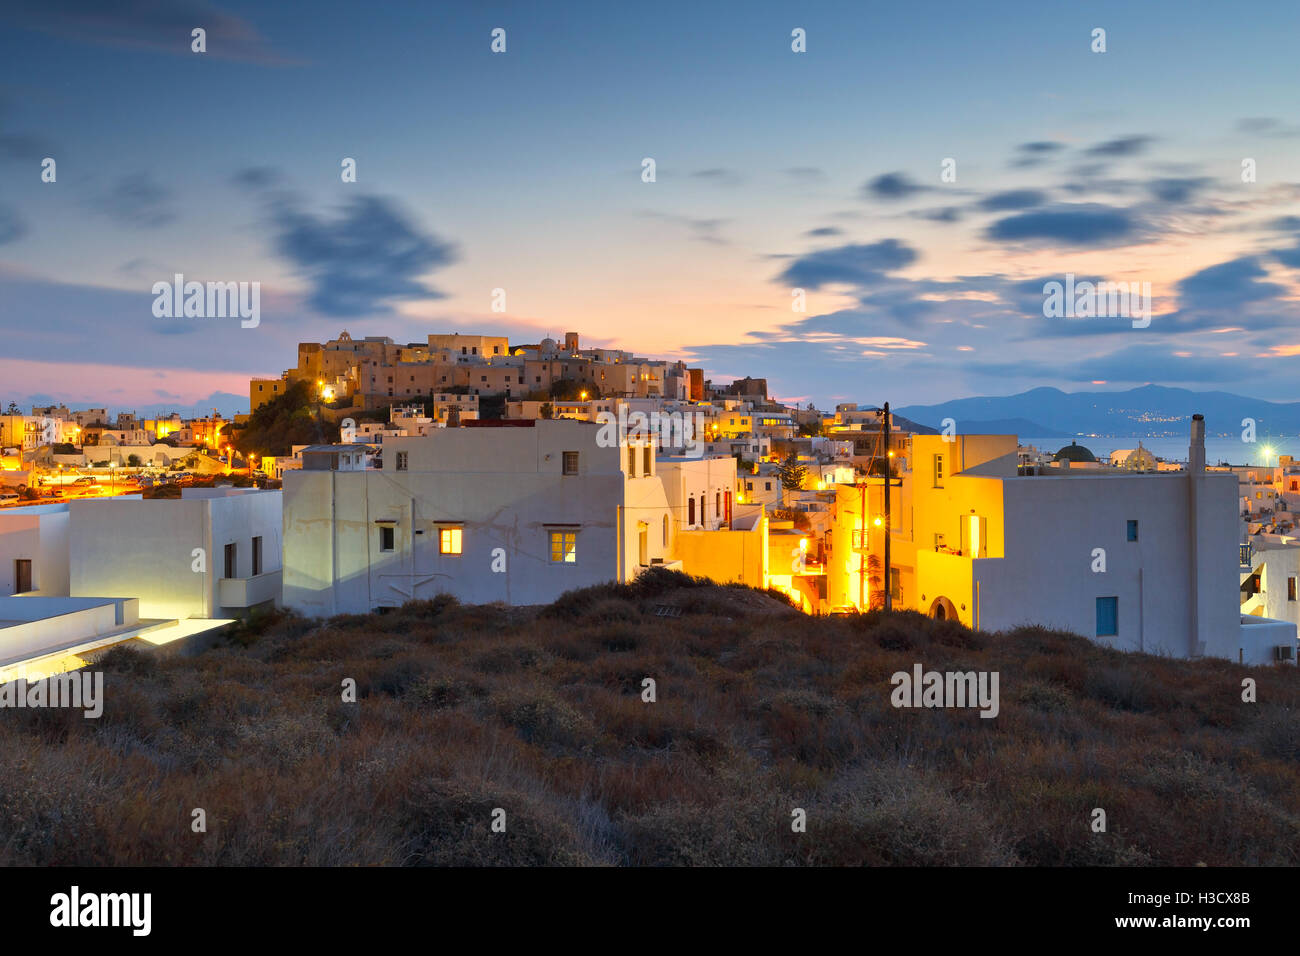 View of the castle in town of Naxos. - Stock Image